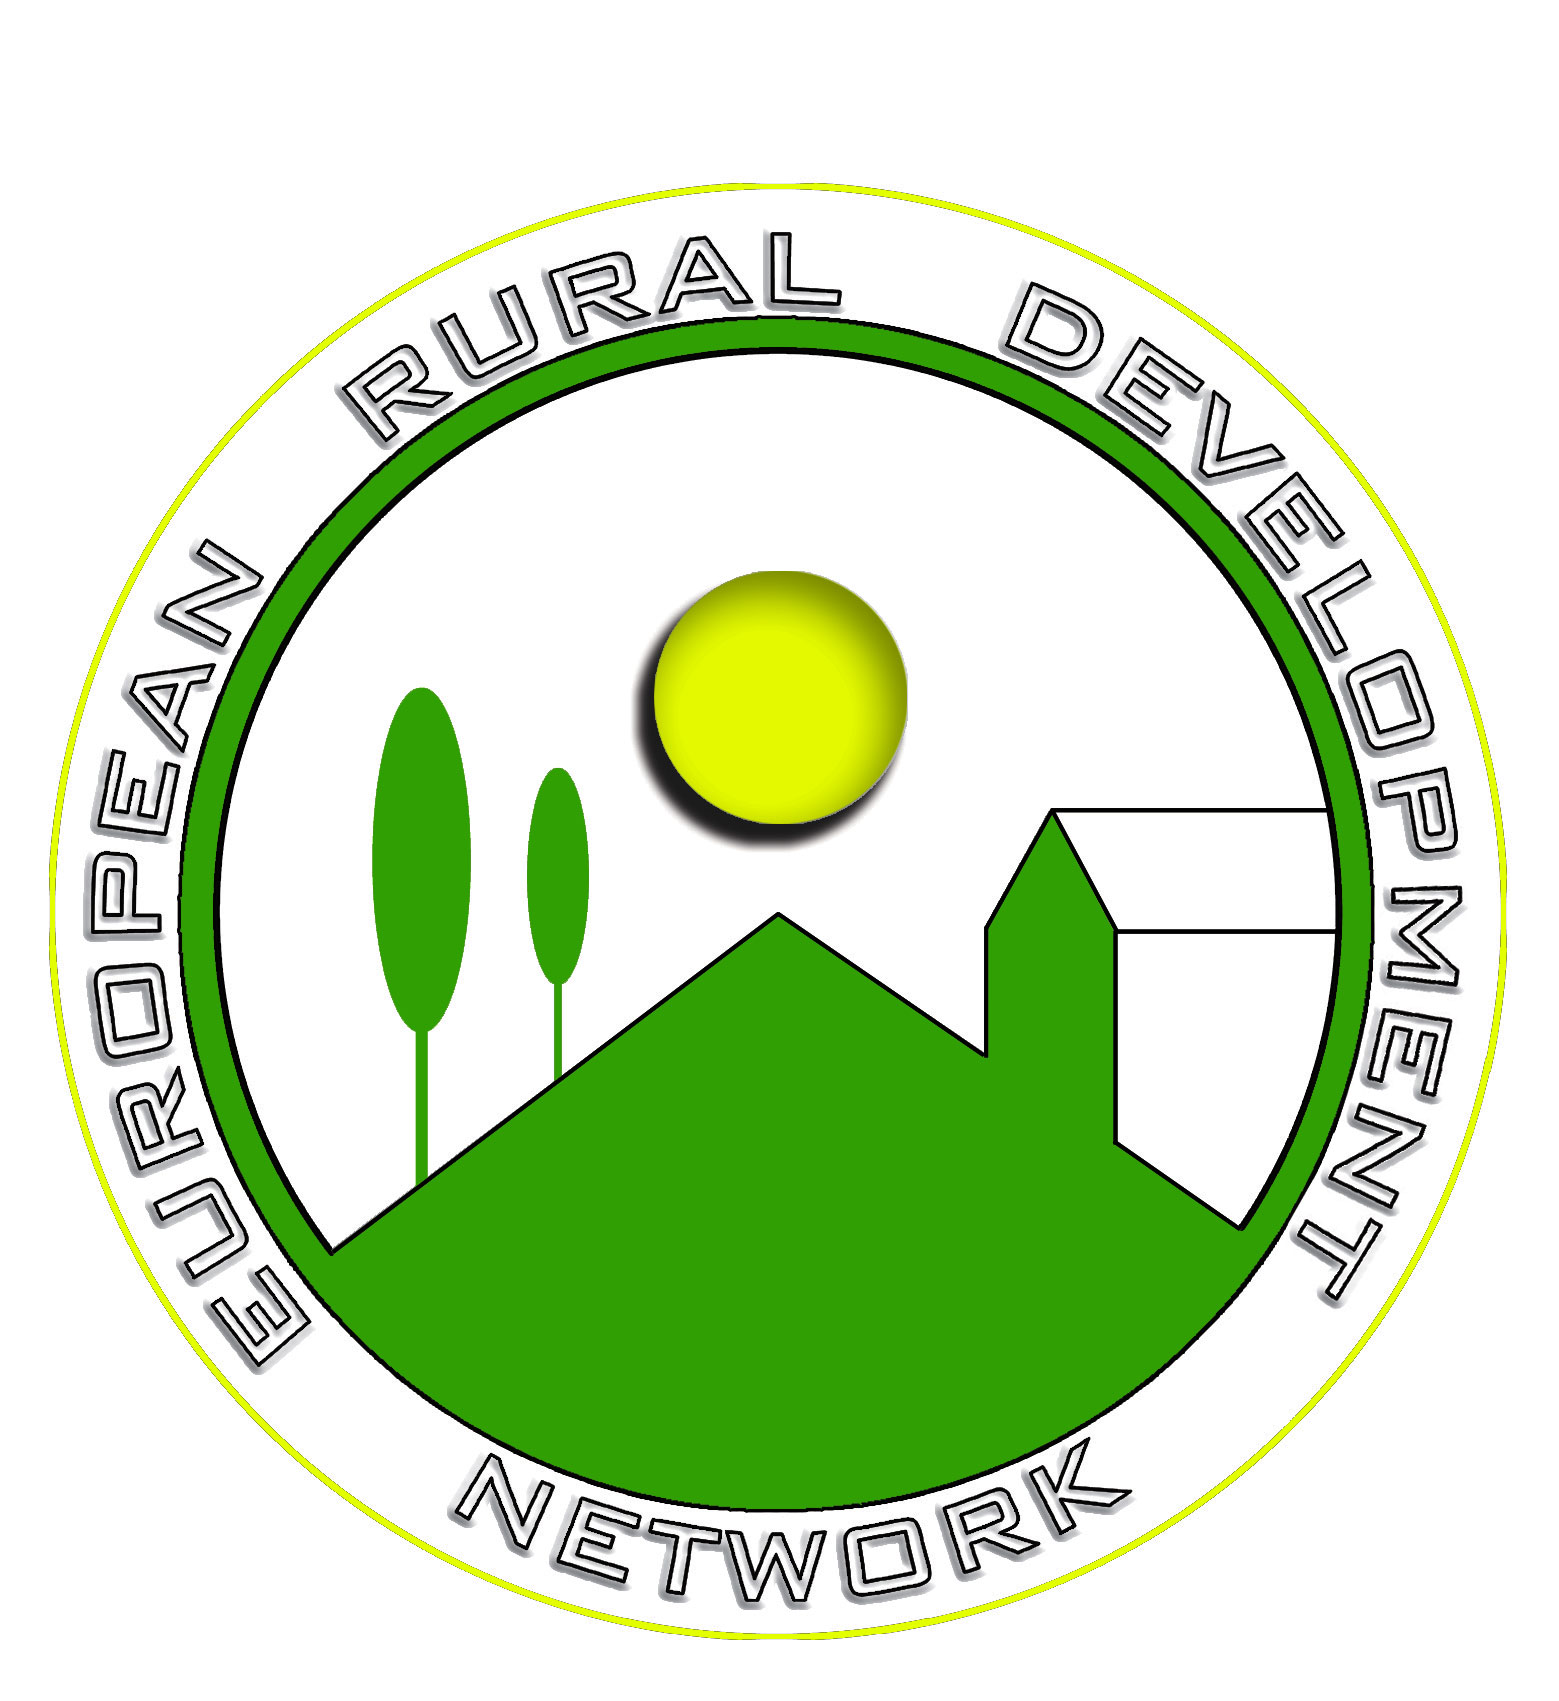 European Rural Development Network